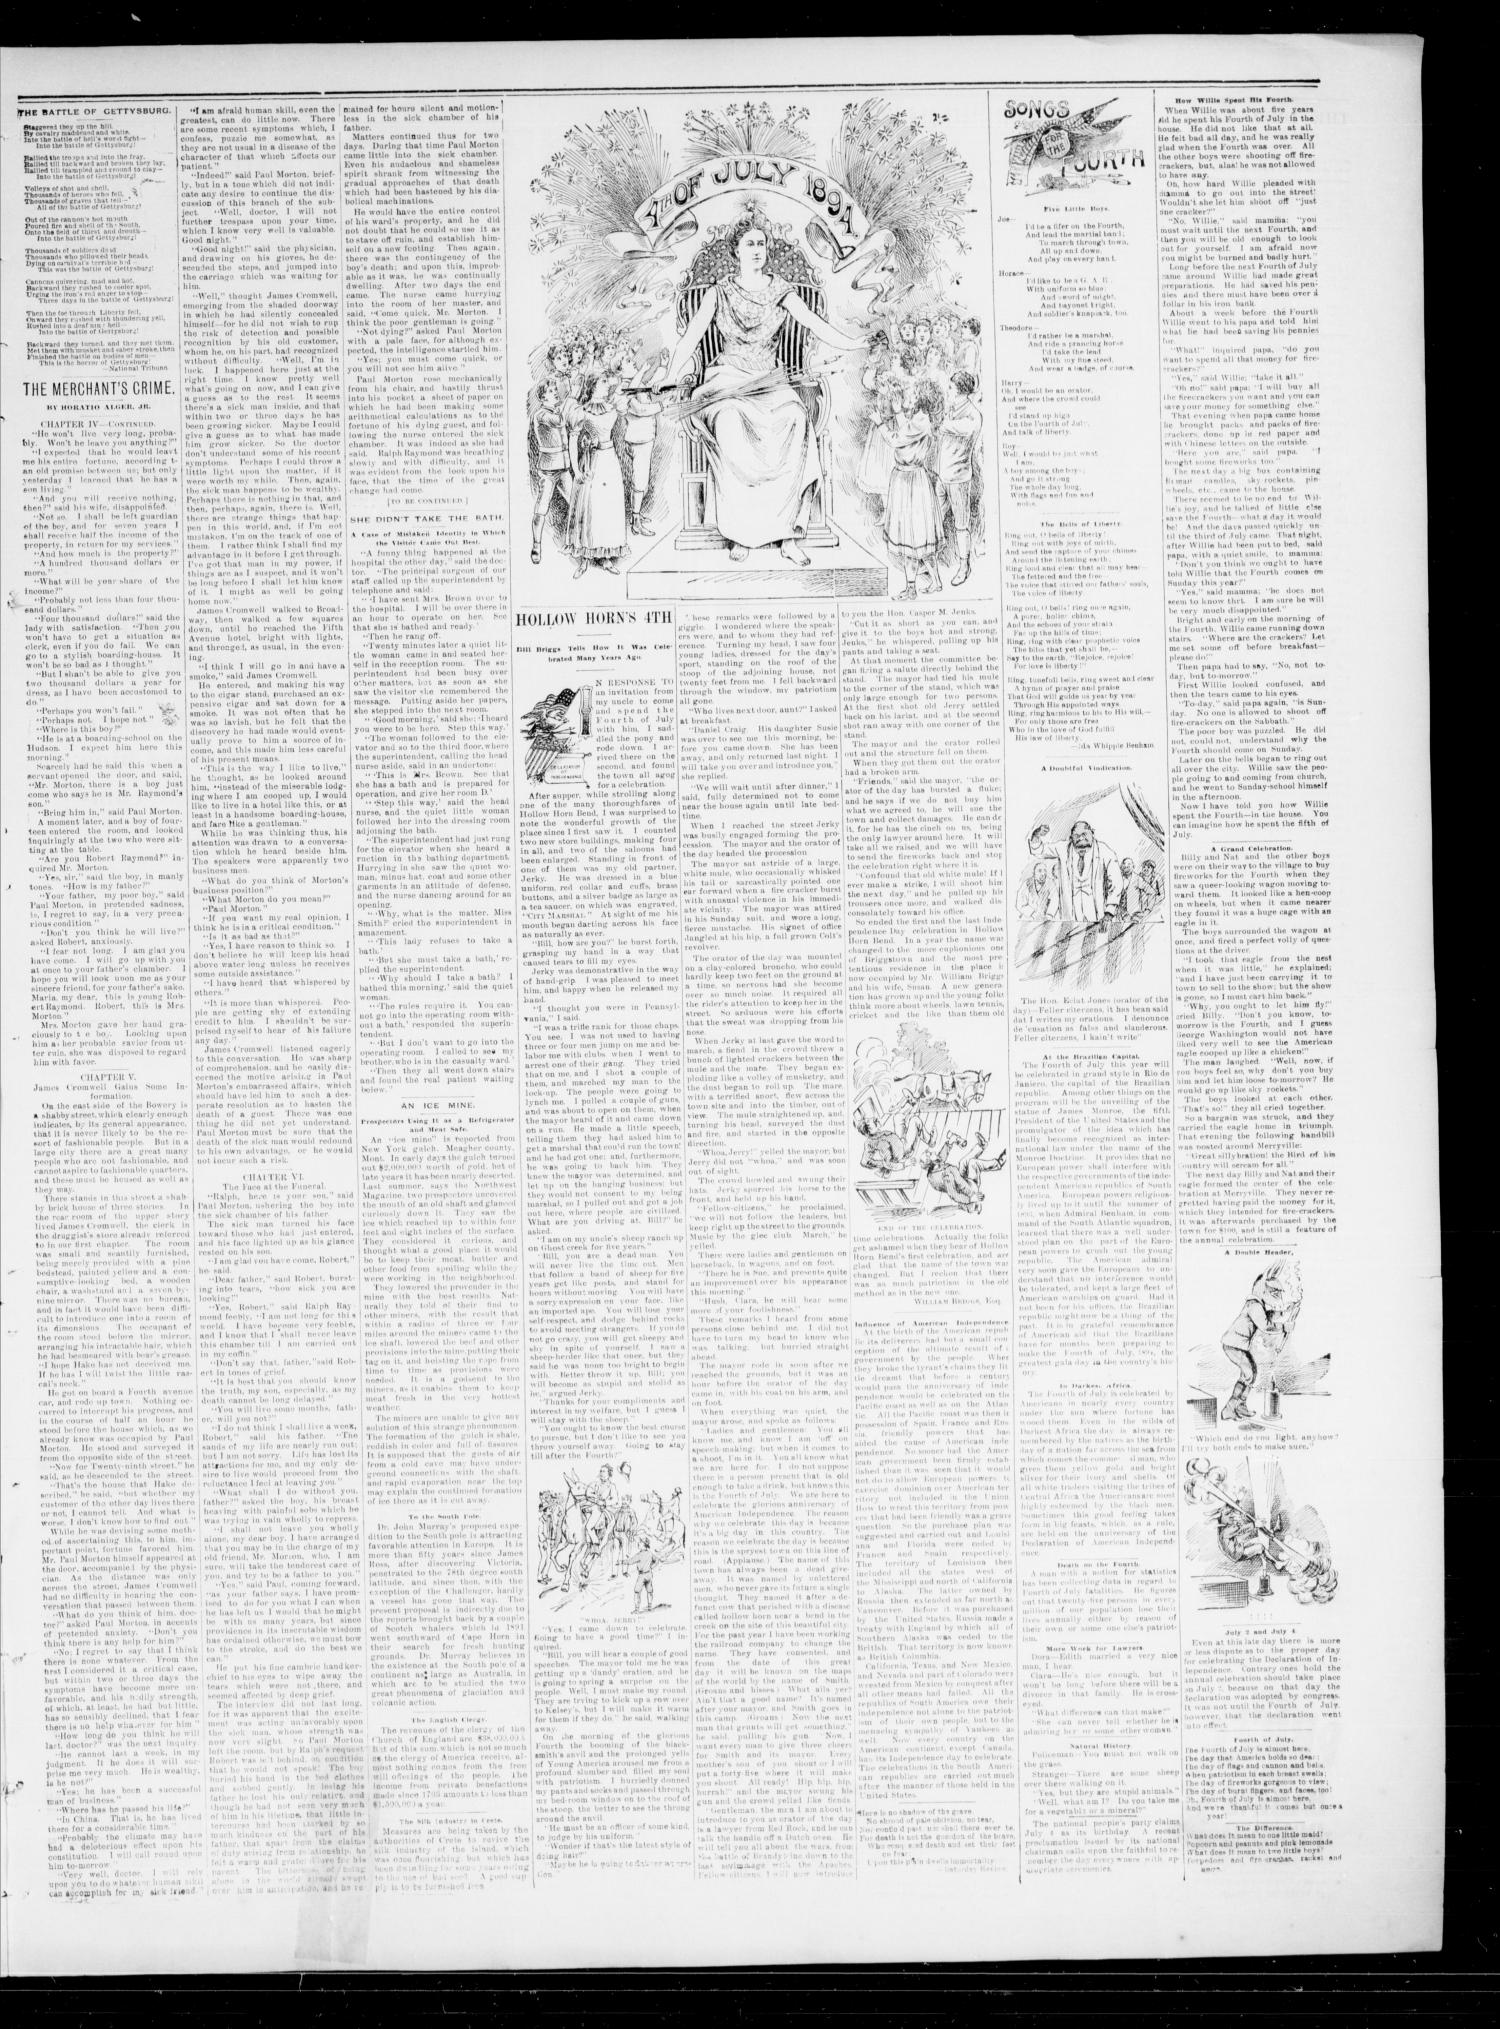 The State Democrat. (Norman, Okla.), Vol. 5, No. 121, Ed. 1 Wednesday, July 4, 1894                                                                                                      [Sequence #]: 3 of 4